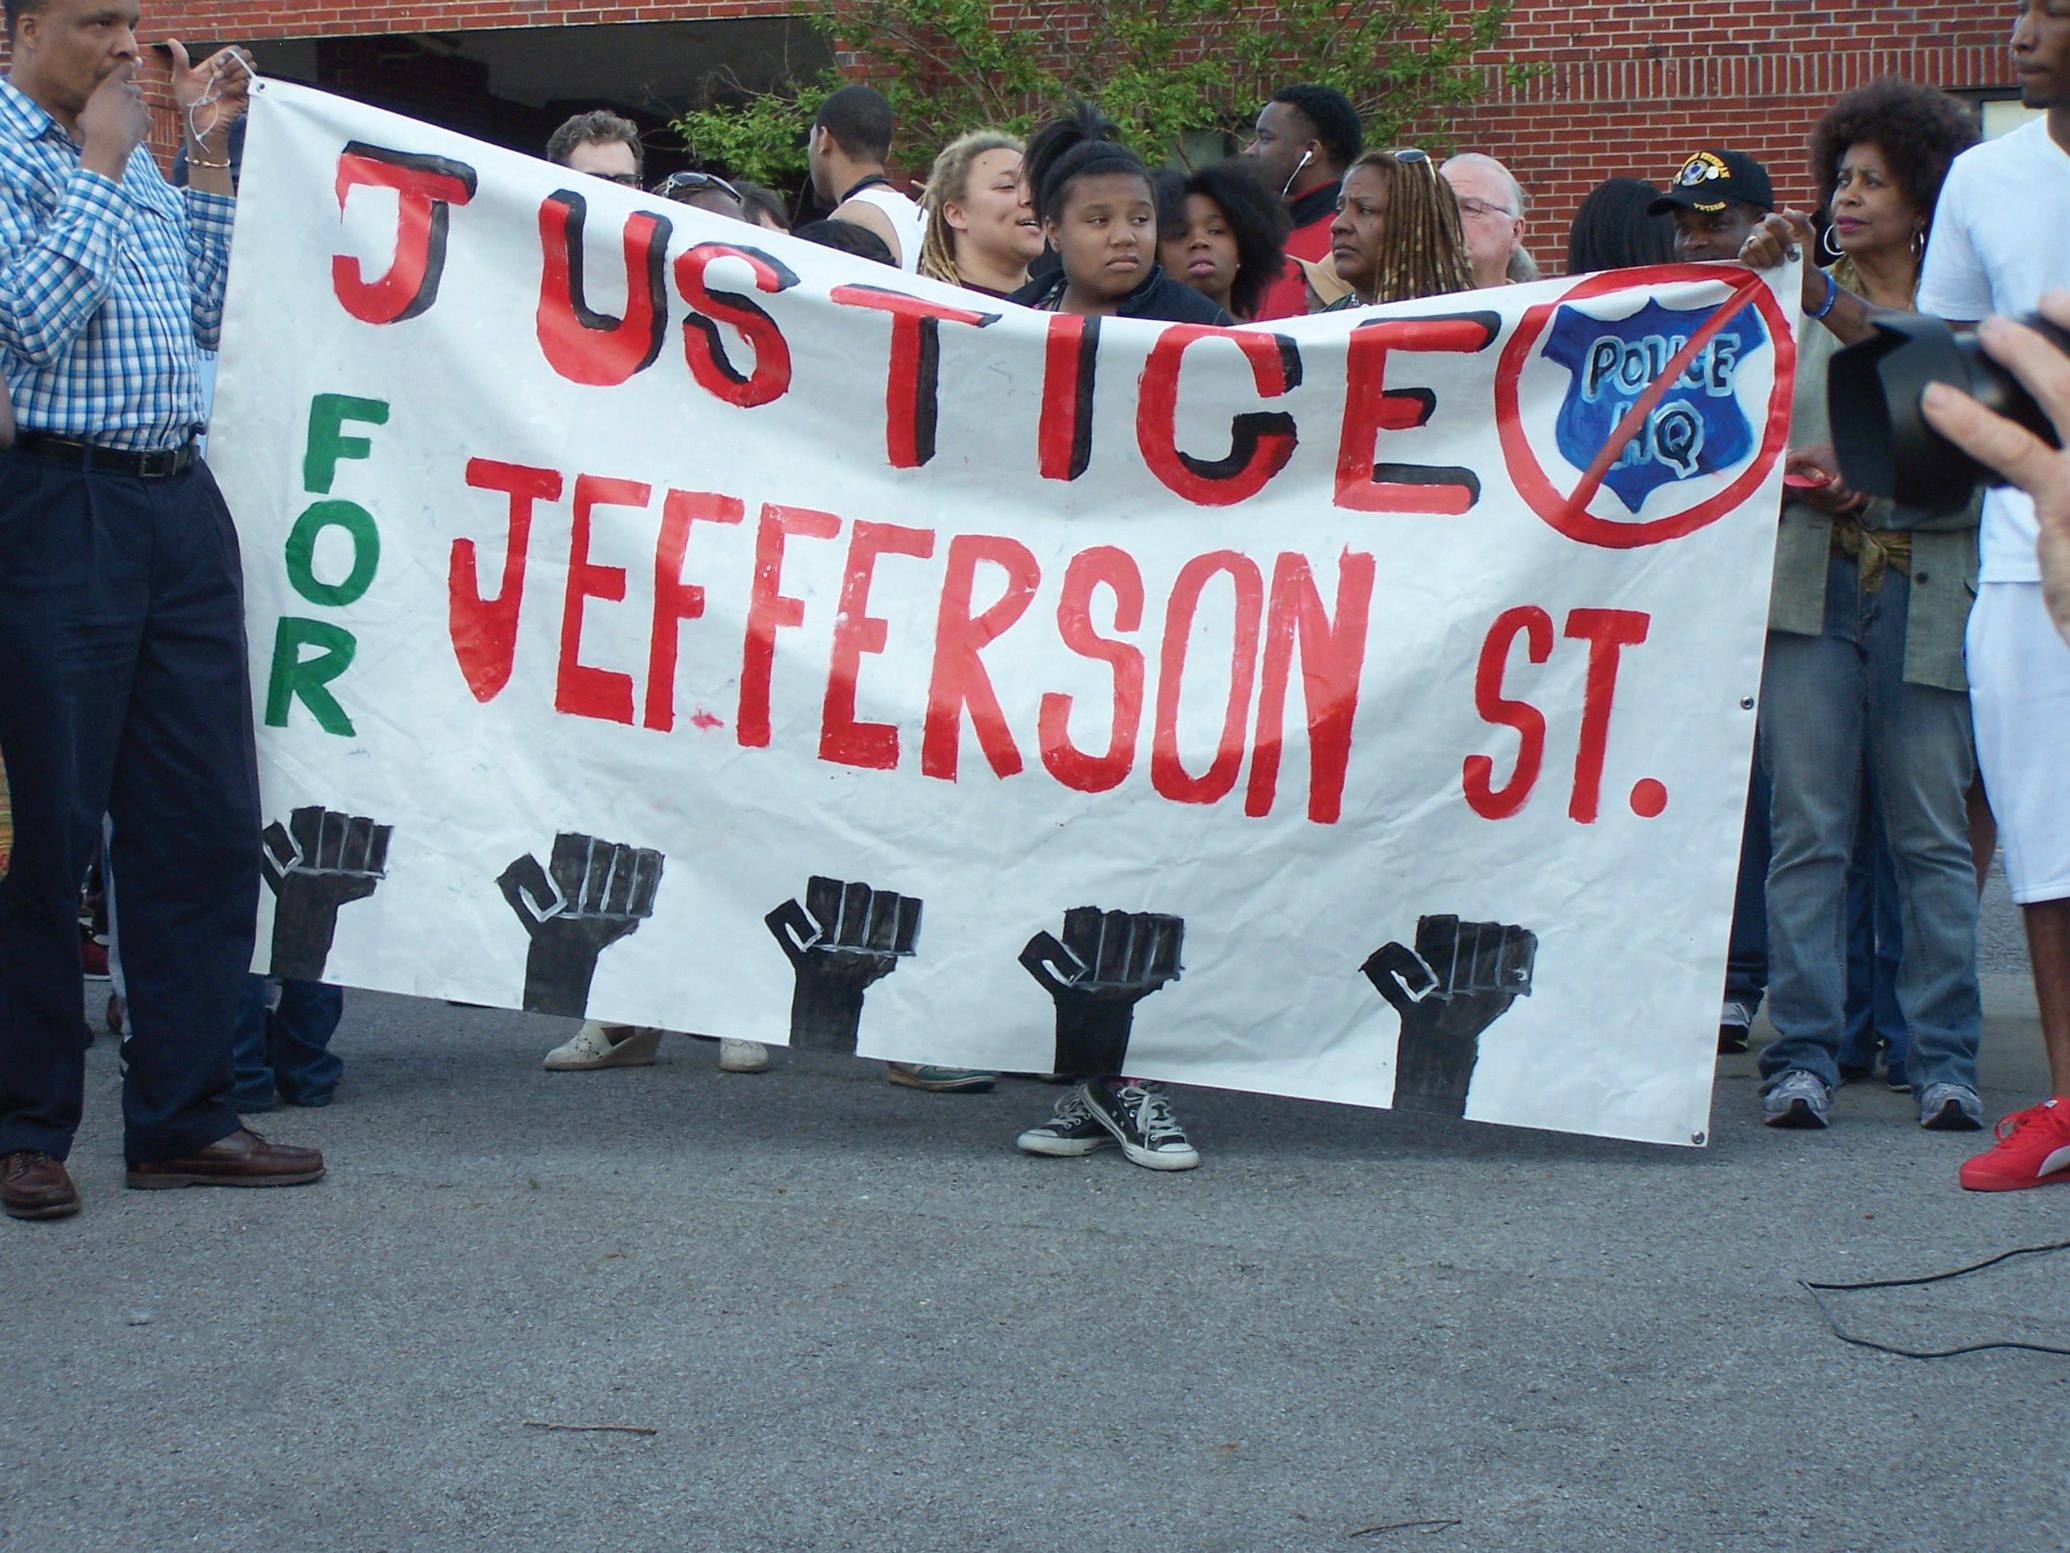 justice for jefferson street